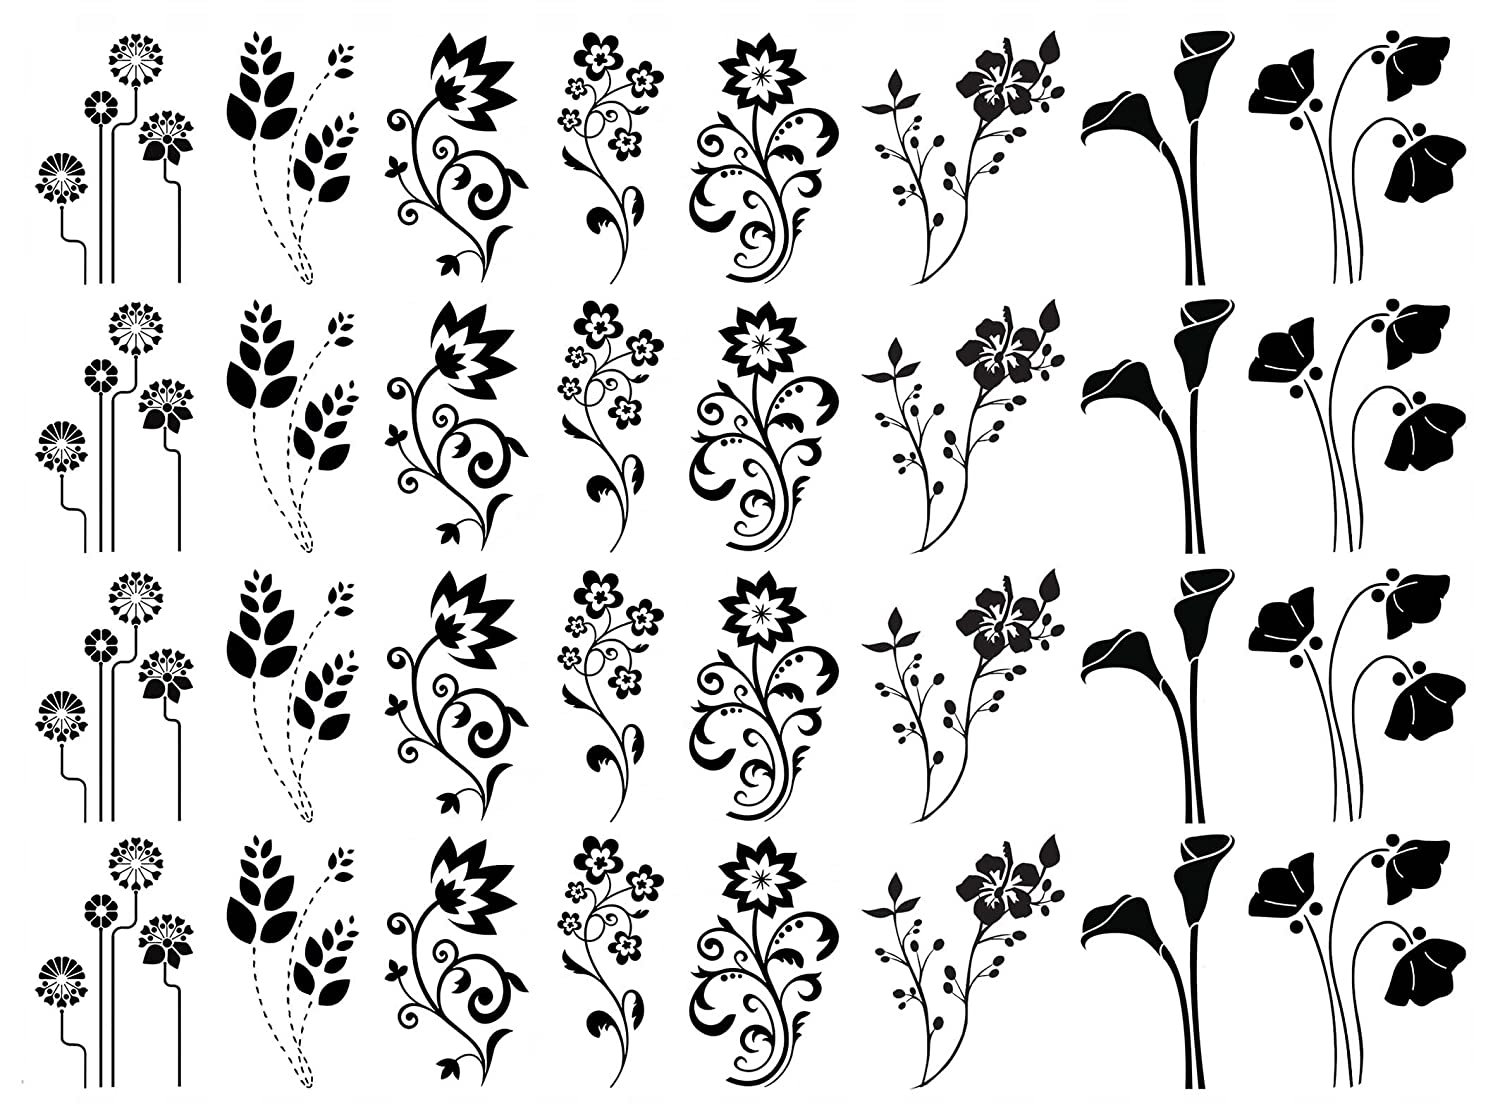 Fantasy Flower 1-1//4 Black 17CC895 Fused Glass Decals